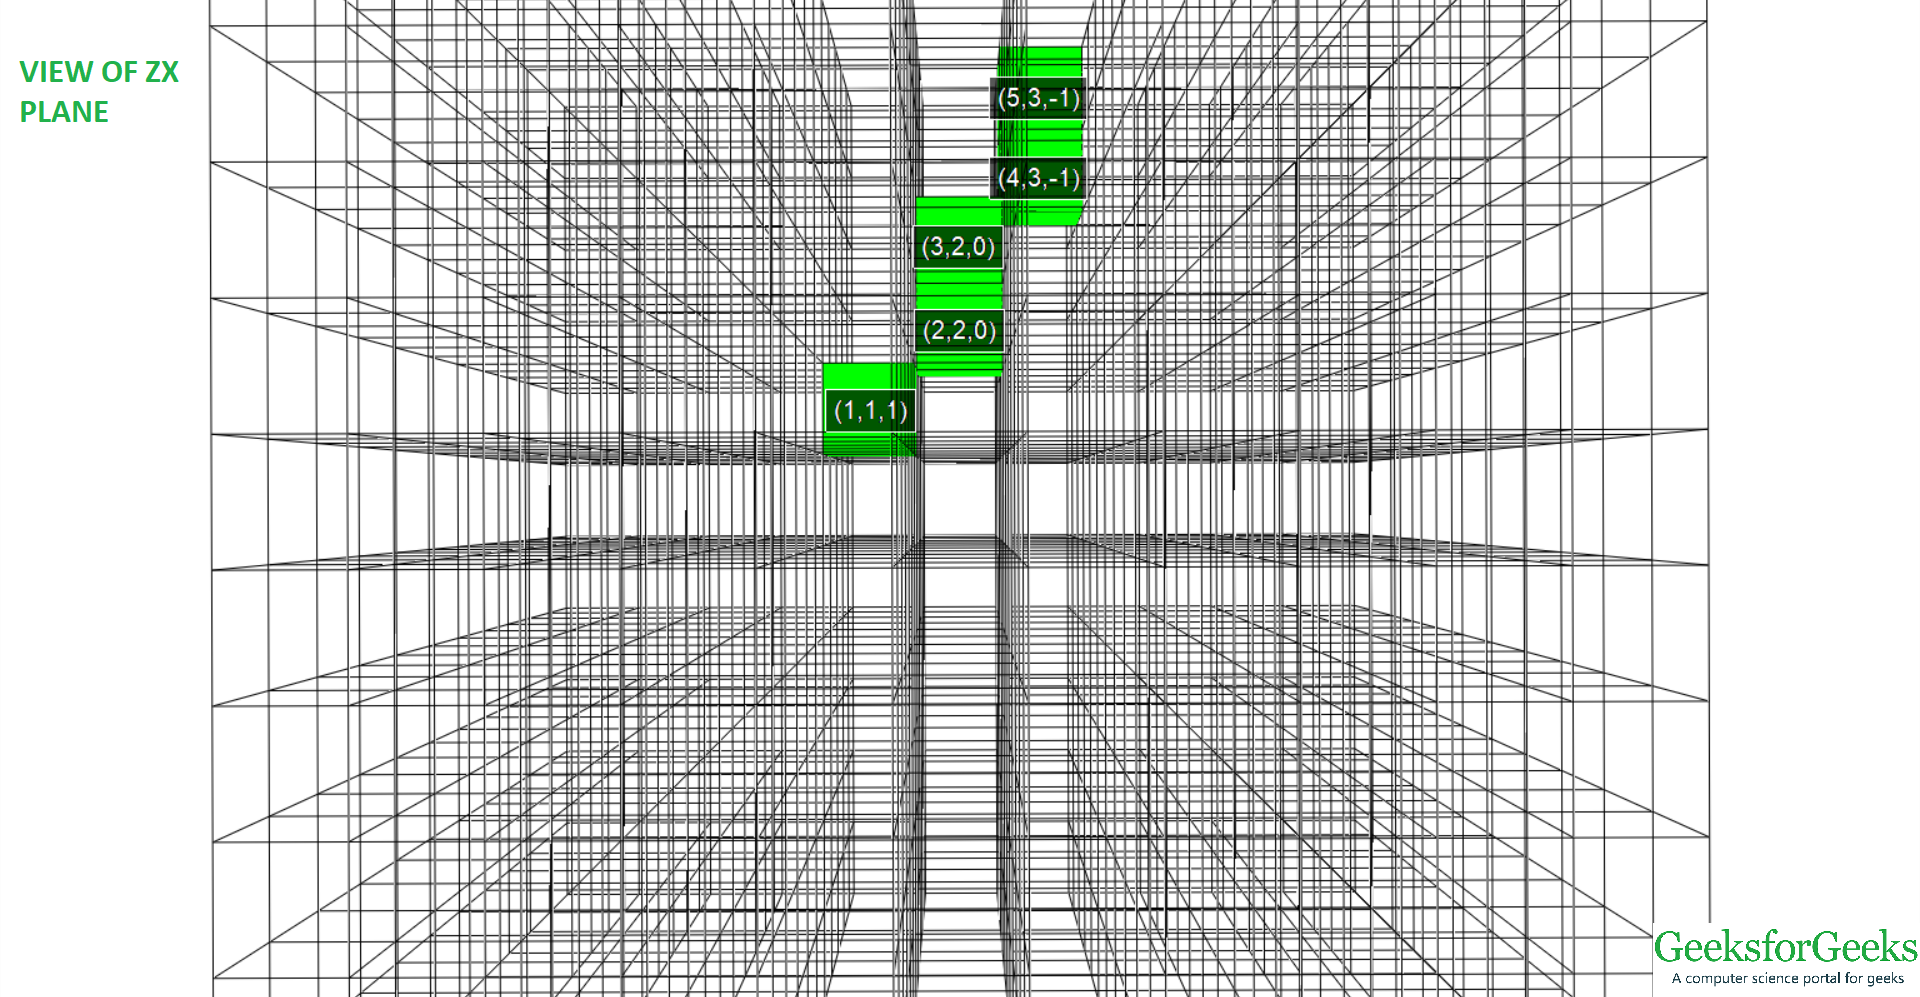 View of 3D line from (-1, 1, 1) to (5, 3, -1) of ZX plane